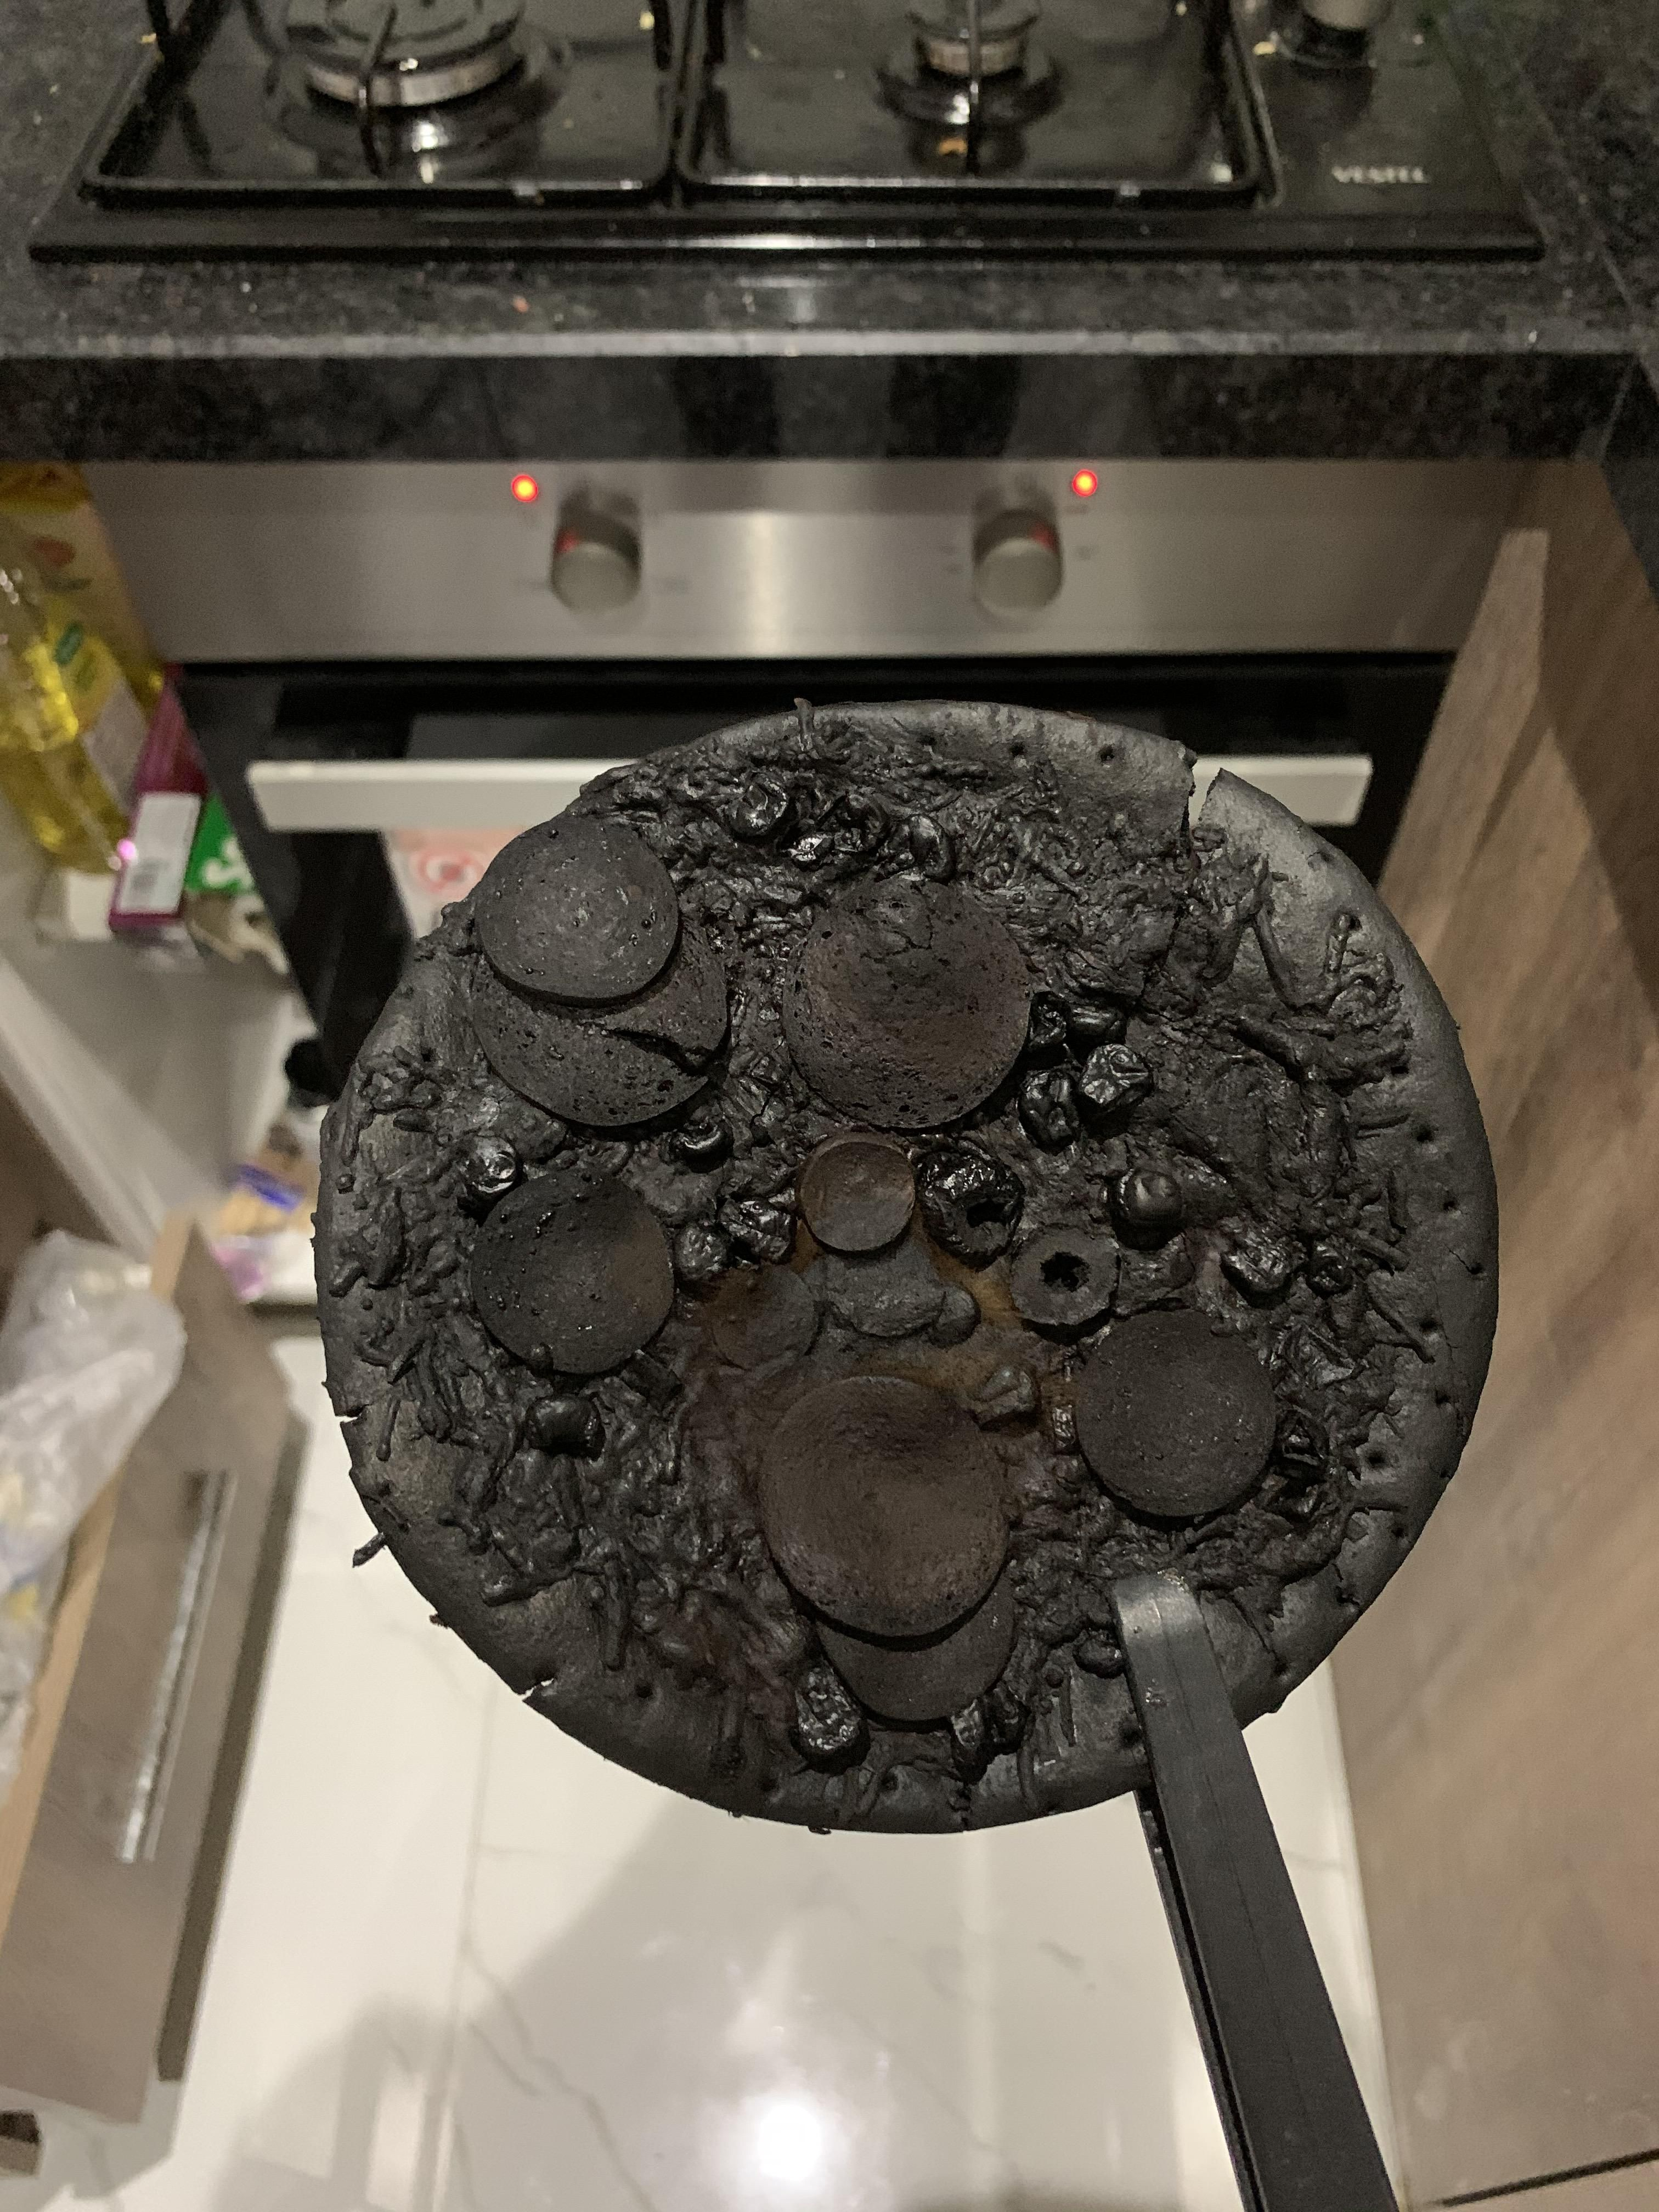 I forgot this pizza in the oven about a year ago